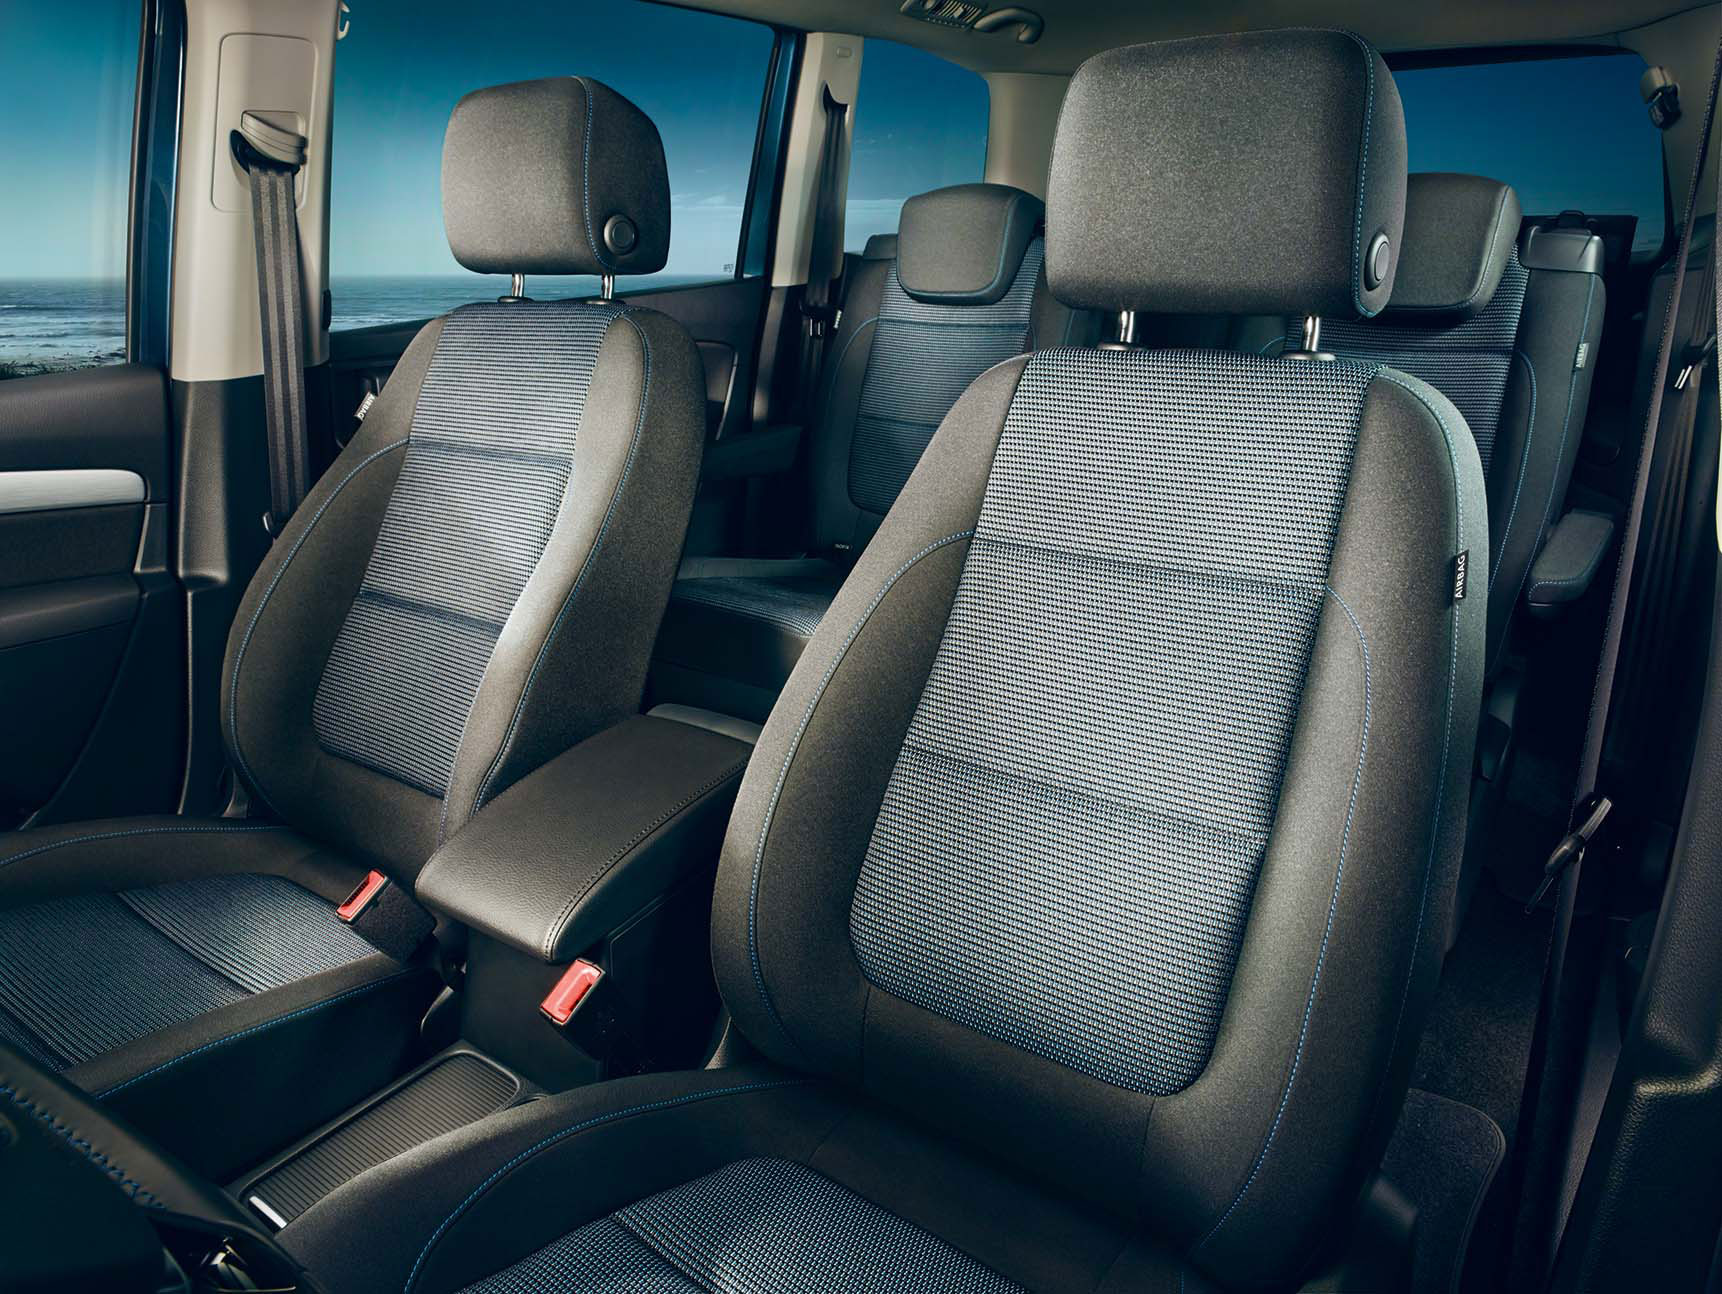 Volkswagen Sharan FL interior view front seats